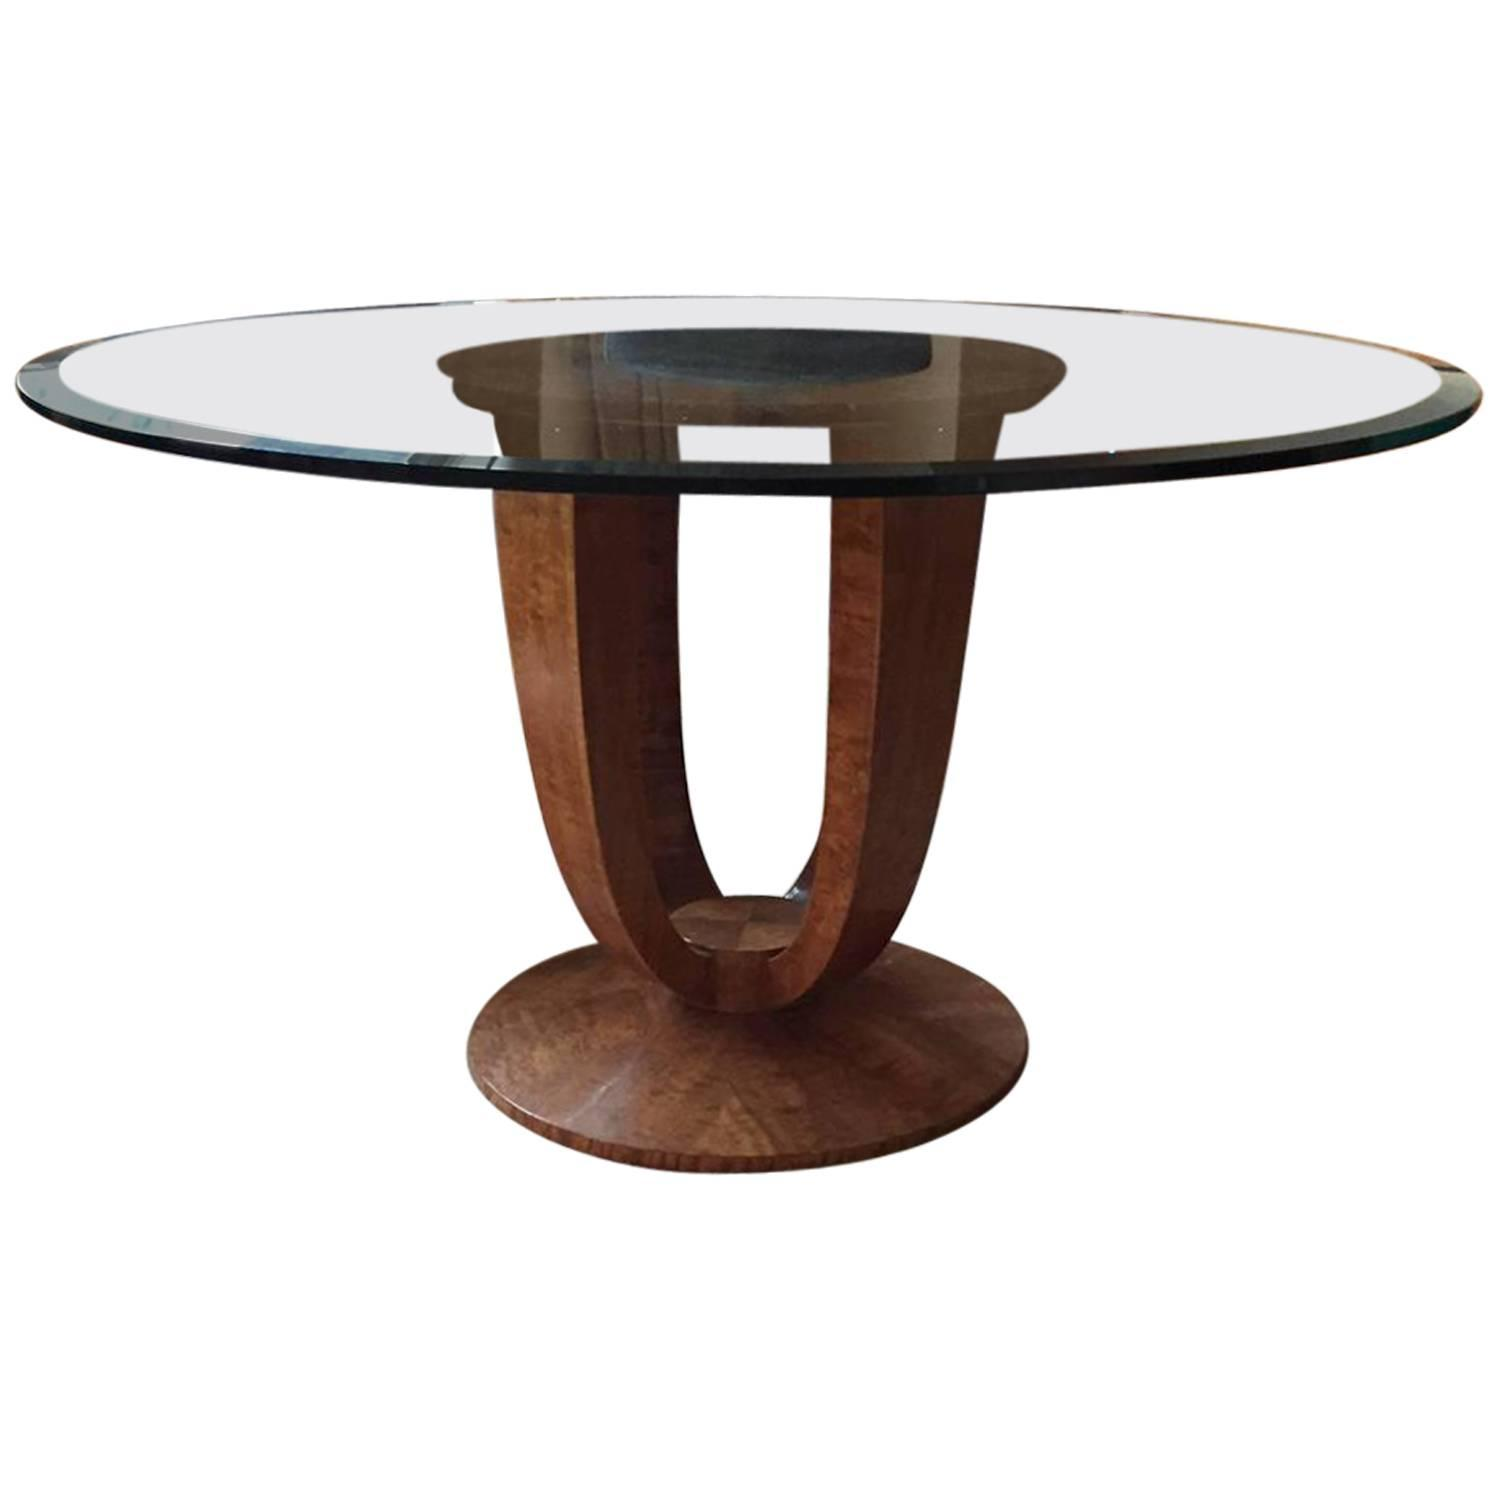 Roche bobois dining table 1970s at 1stdibs - Table roche et bobois ...